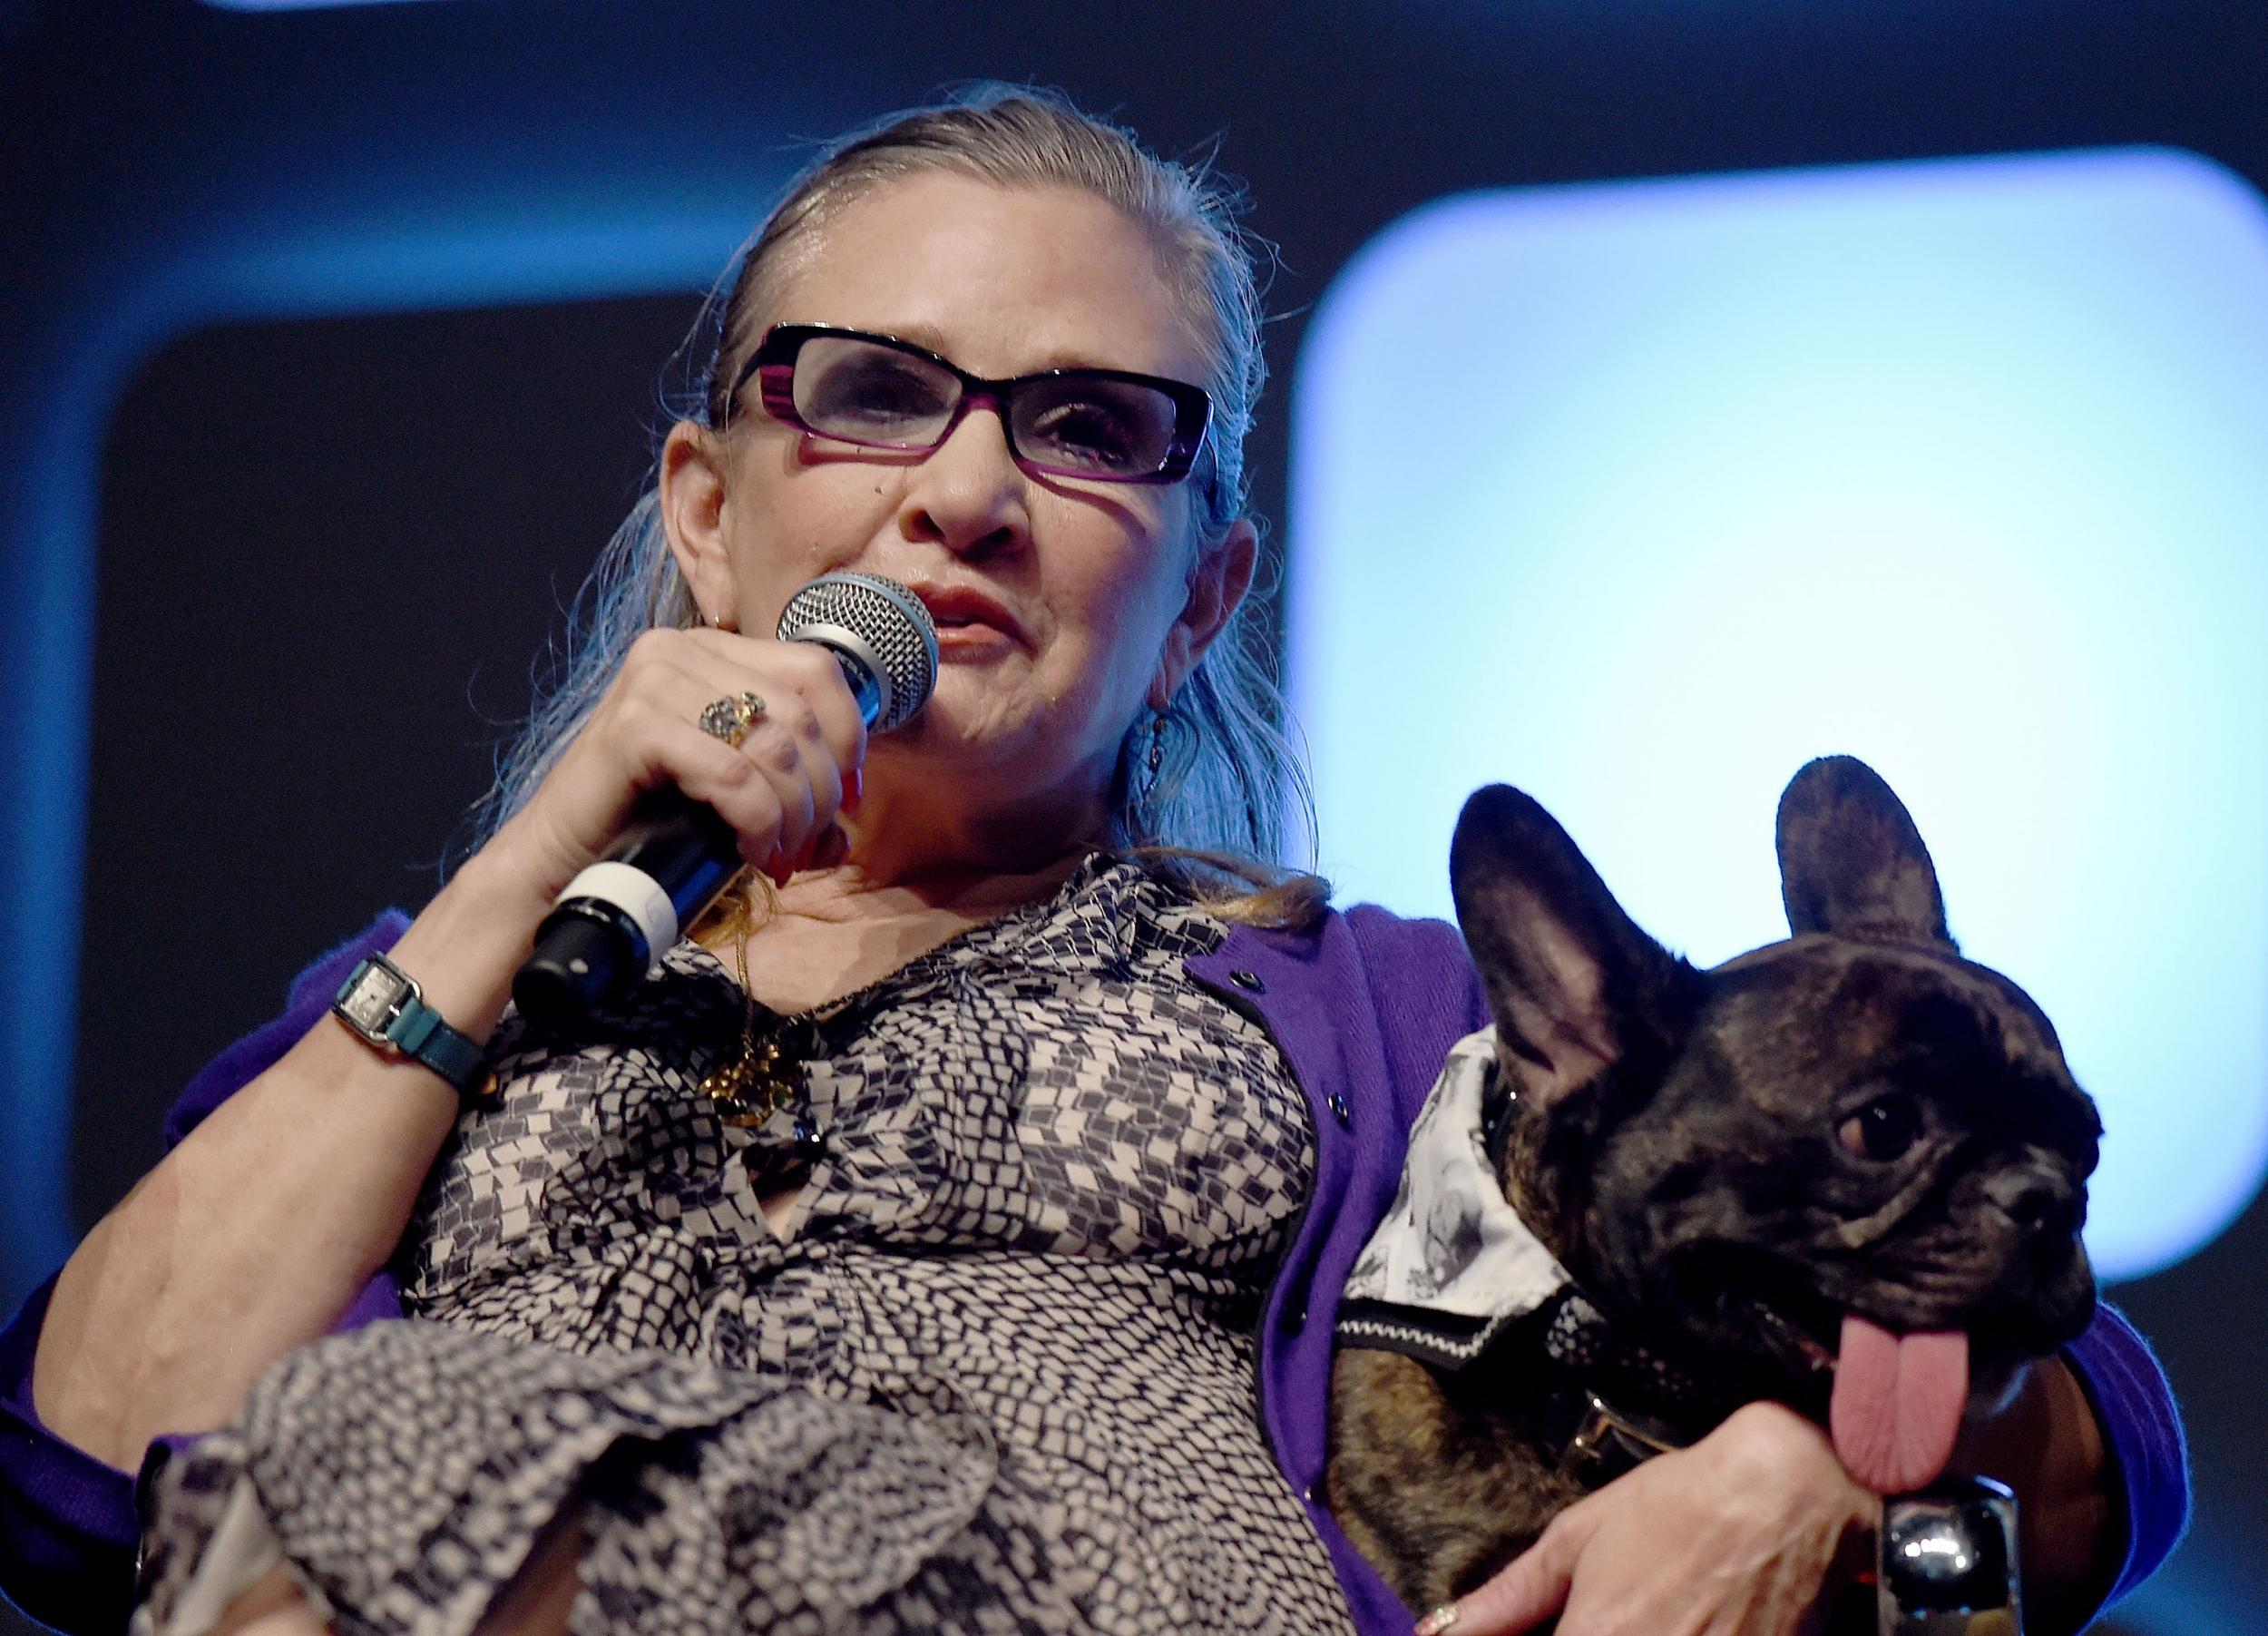 Carrie Fisher's dog Gary went to a 'Last Jedi' screening and 'perked up' when he saw her on screen